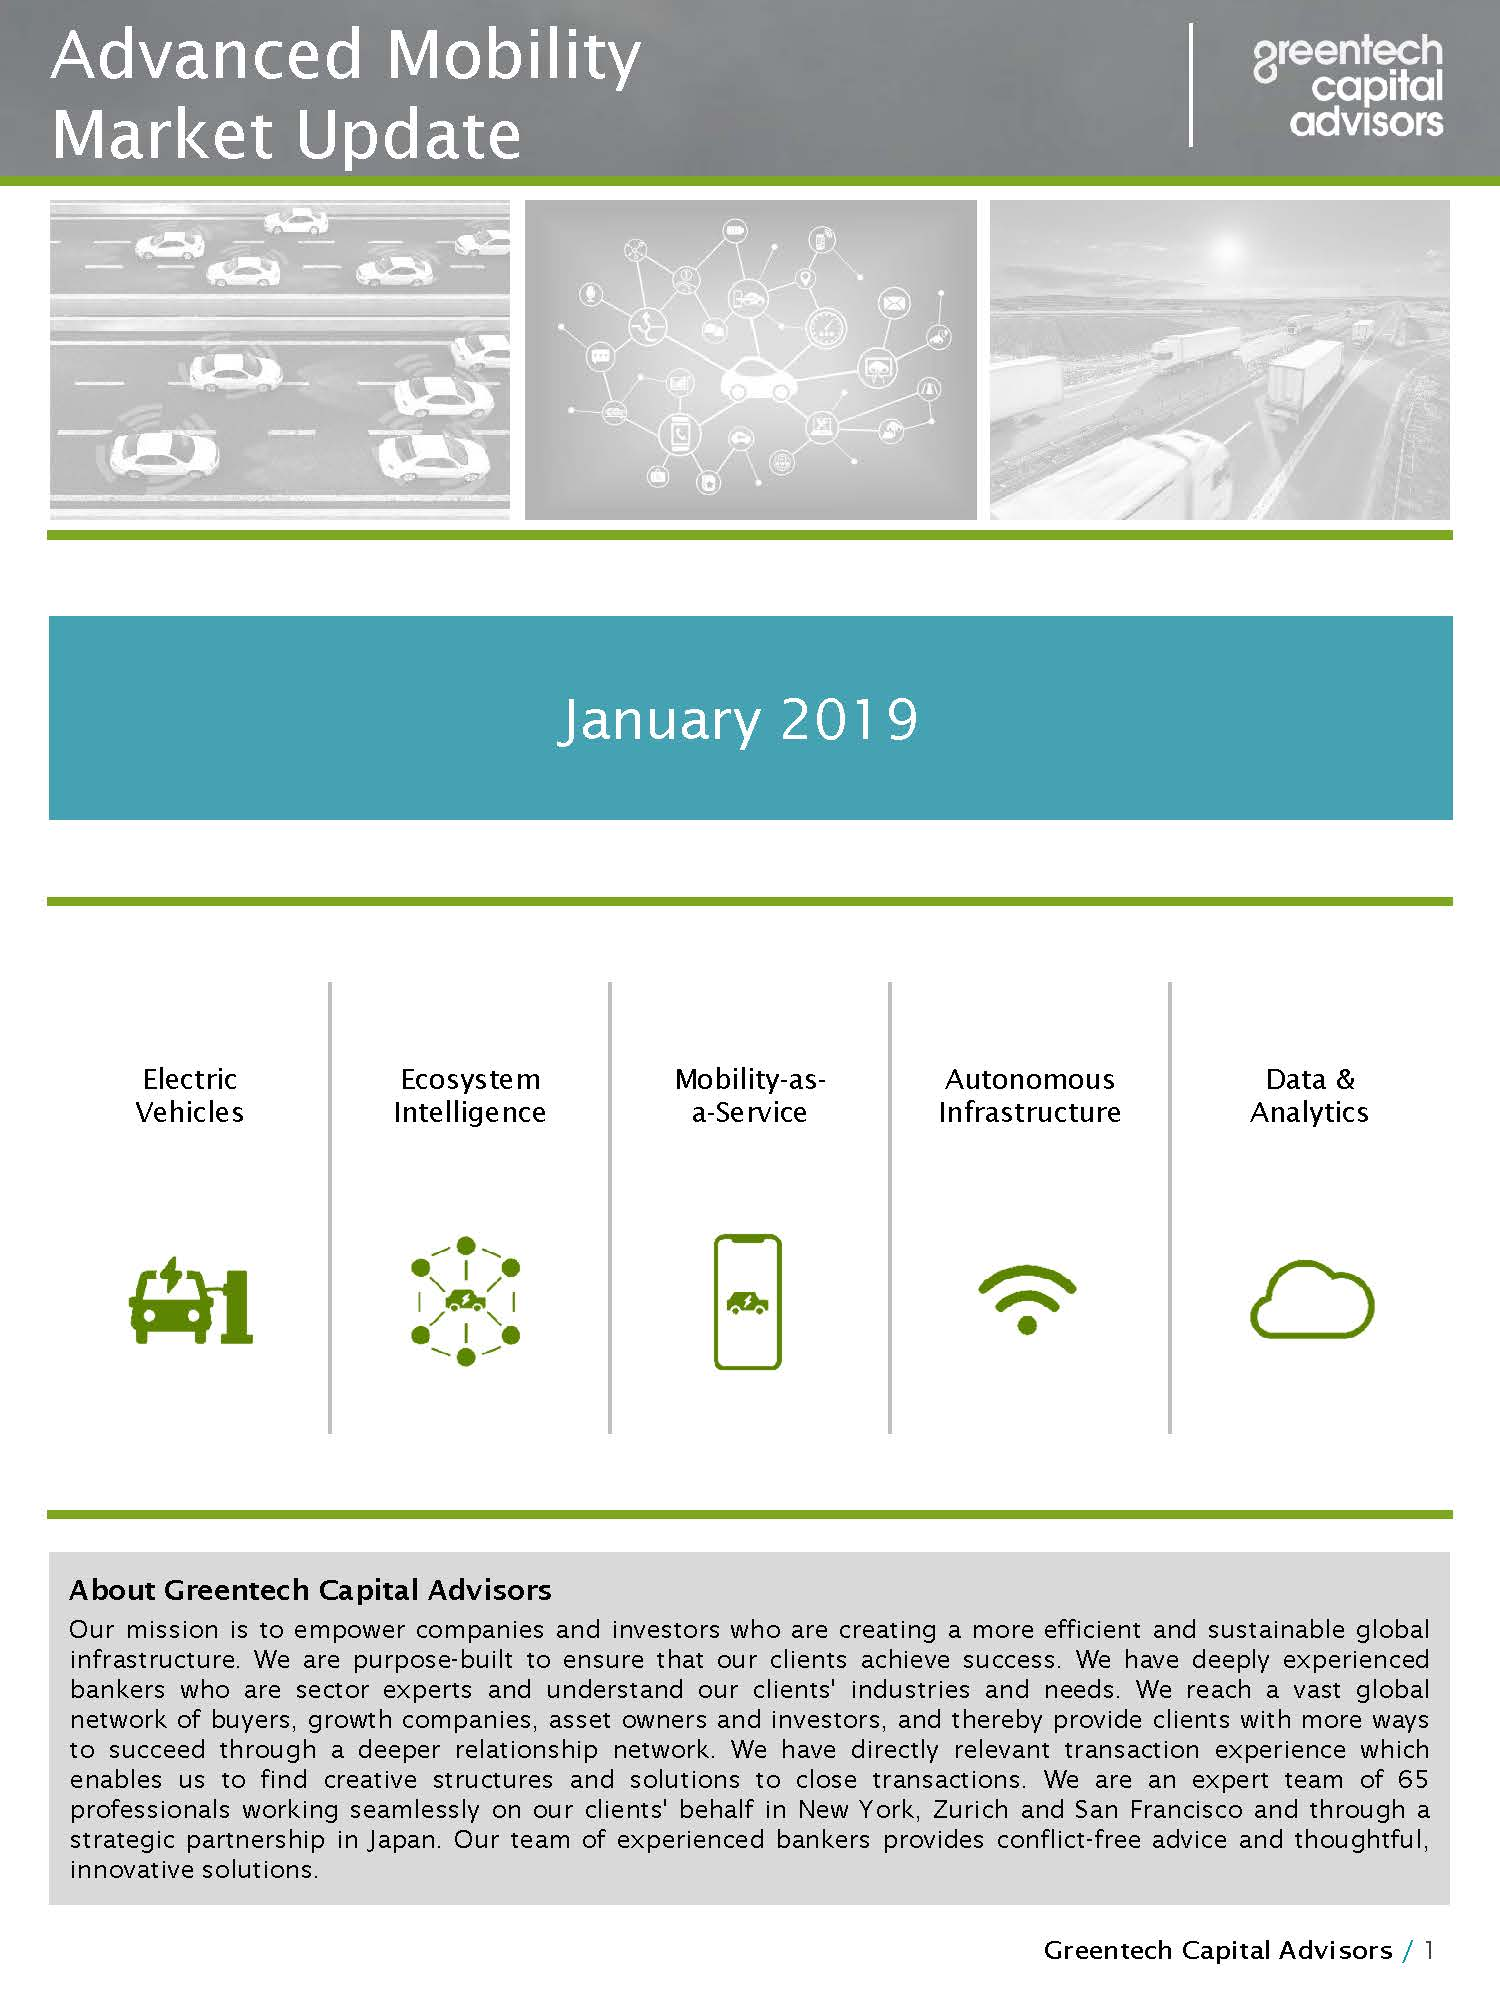 Advanced Mobility Market Update - January 2019